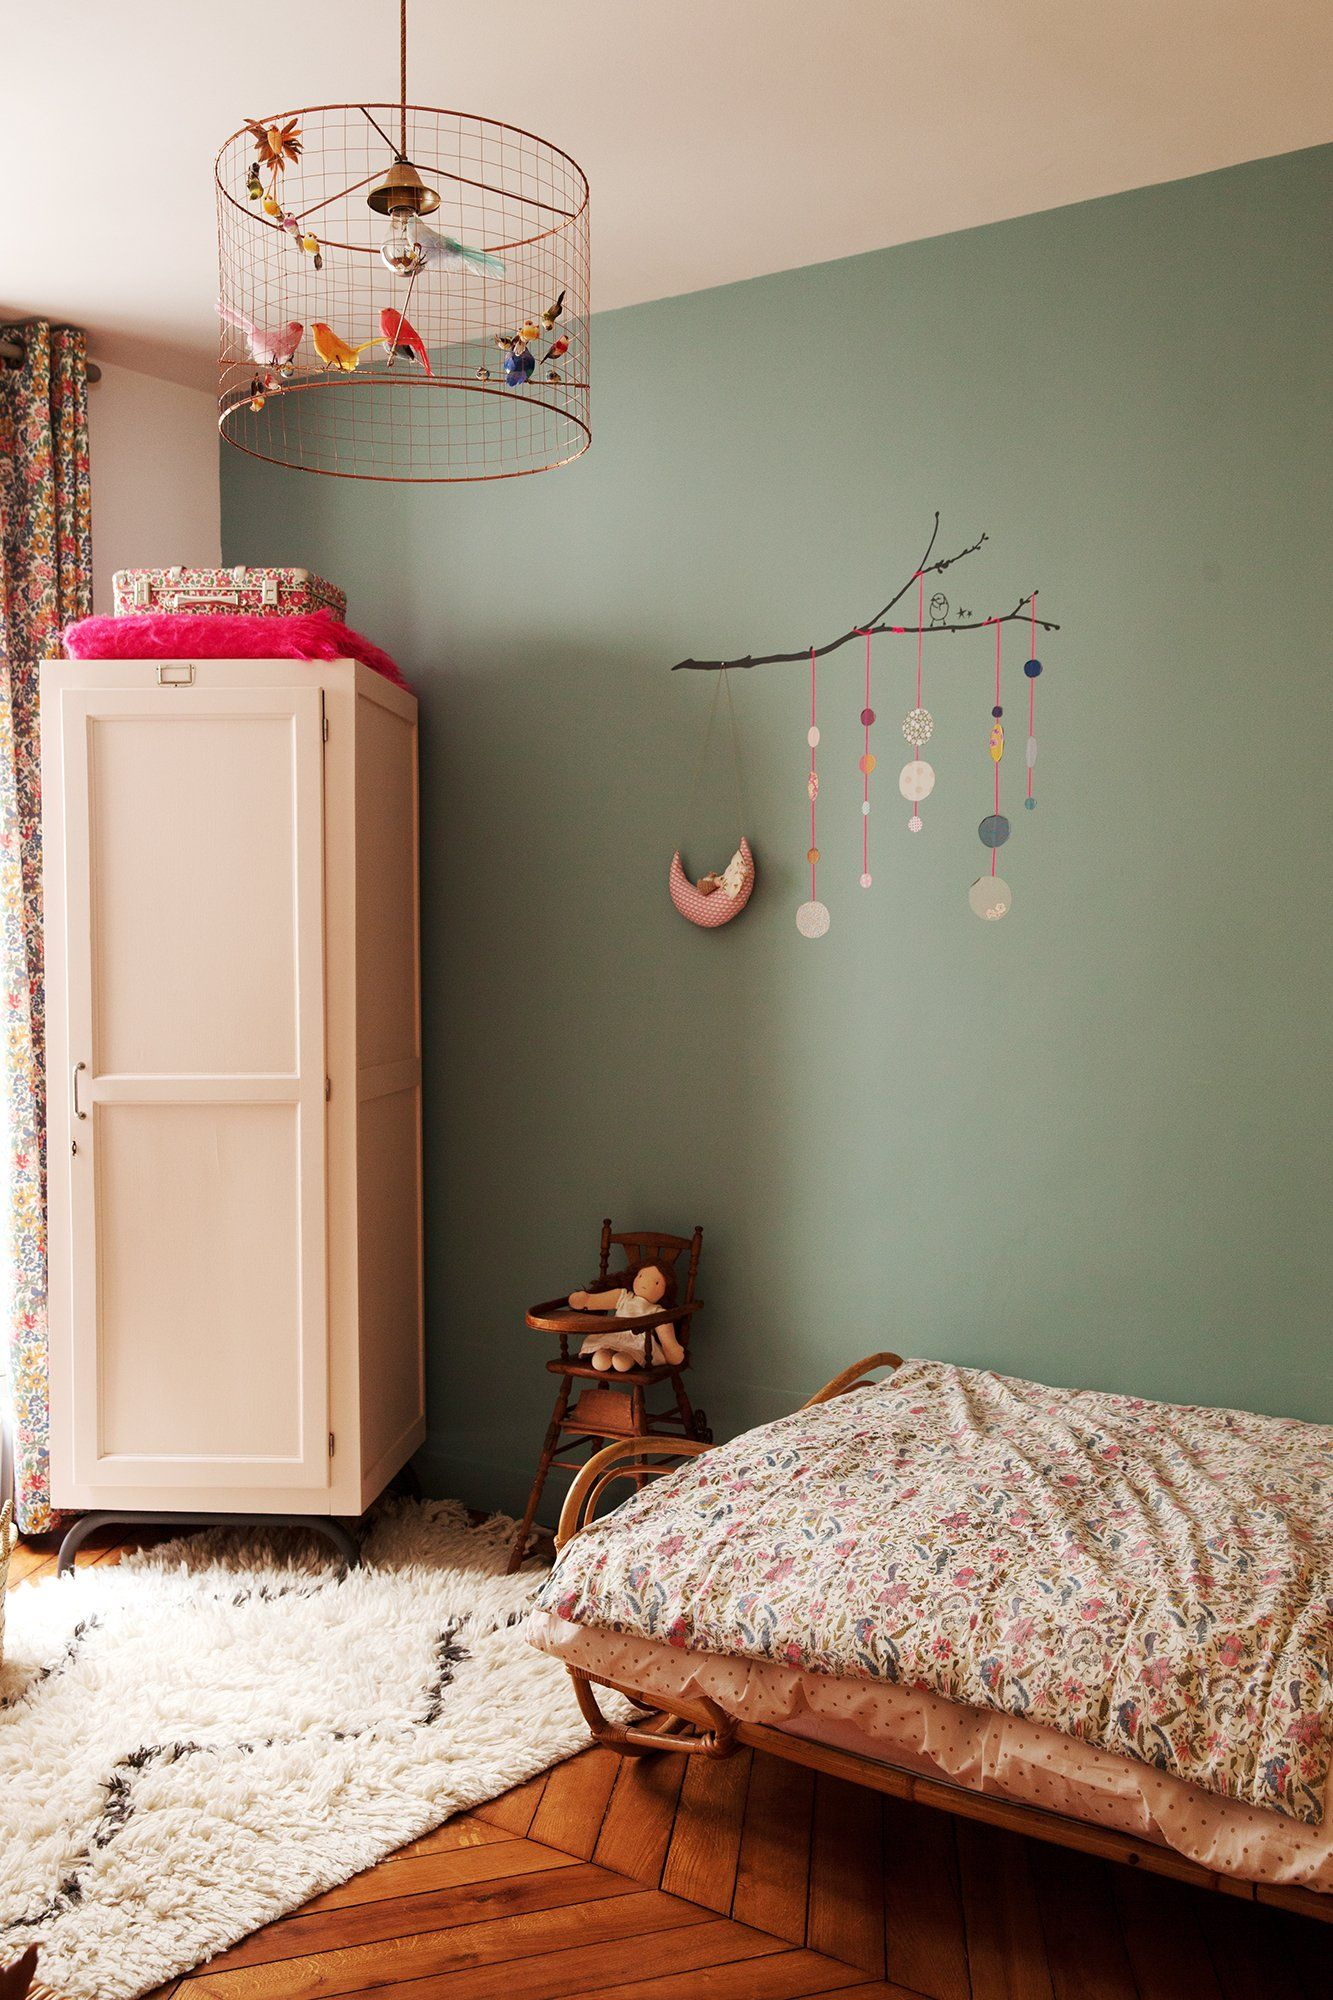 Nayla voillemot et romain ysée ans romy ans kids rooms room